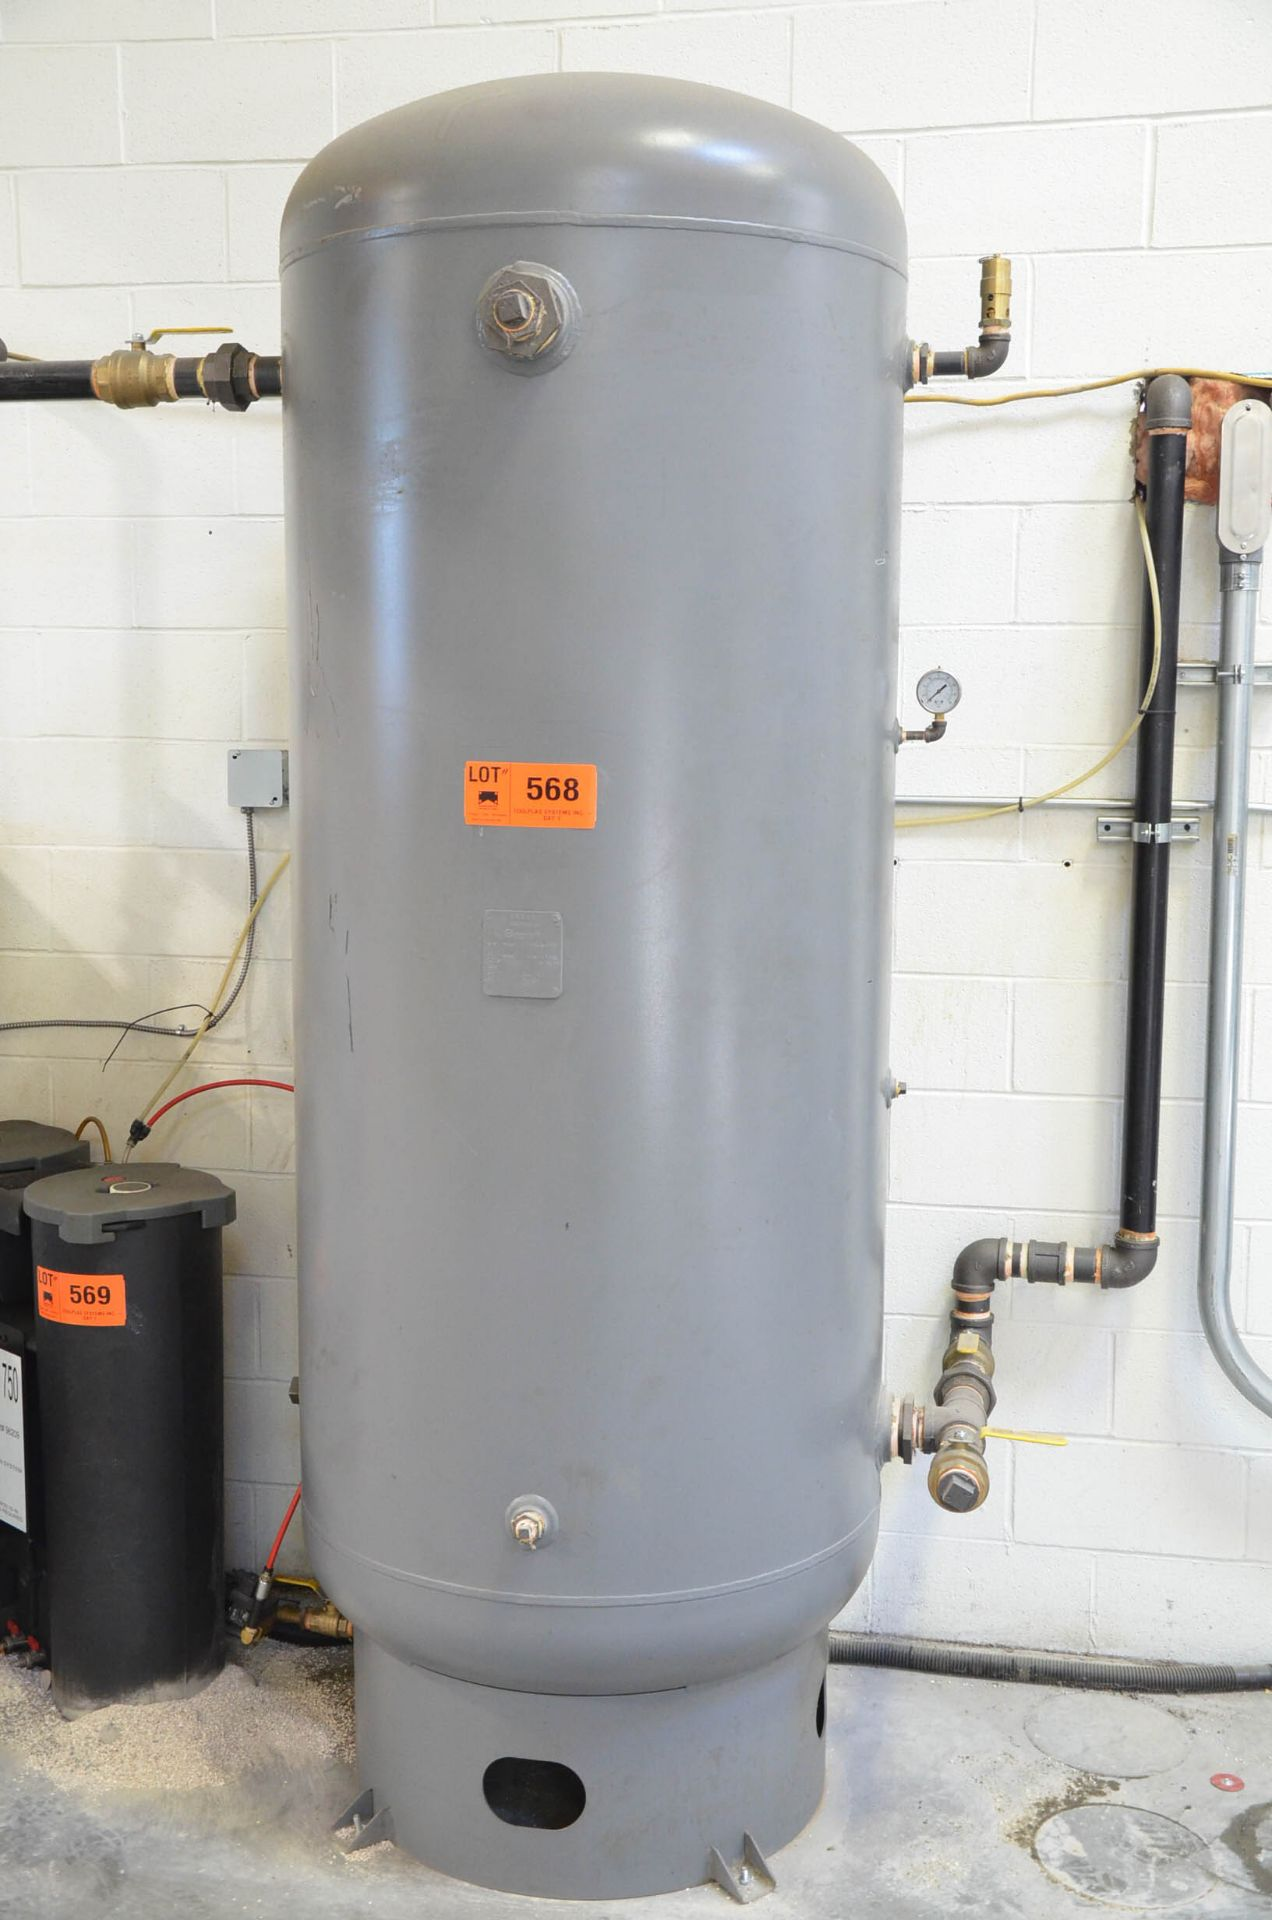 MANCHESTER LTD APPROX. 400 GAL CAPACITY AIR RECEIVER TANK, S/N N/A (SLIGHT DELAY DELIVERY) (CI) [